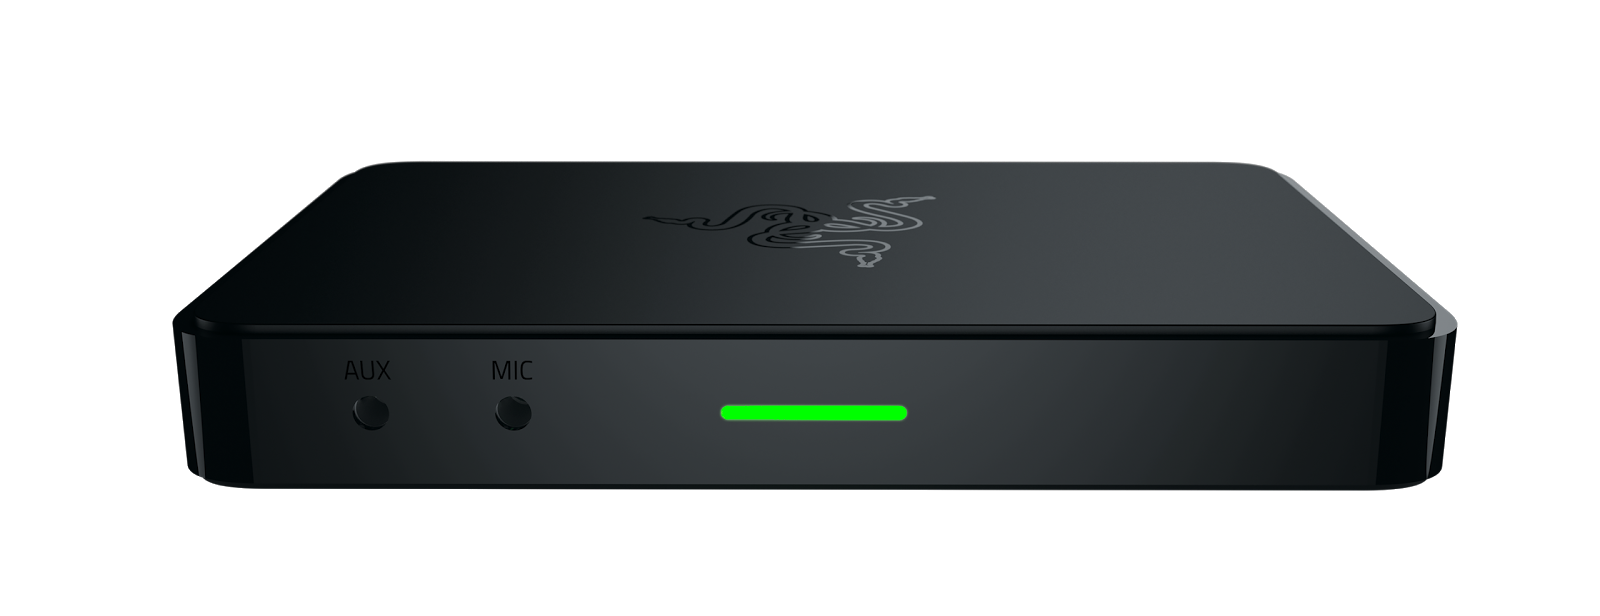 ENTER THE WORLD OF STREAMING LIKE A PRO WITH RAZER'S